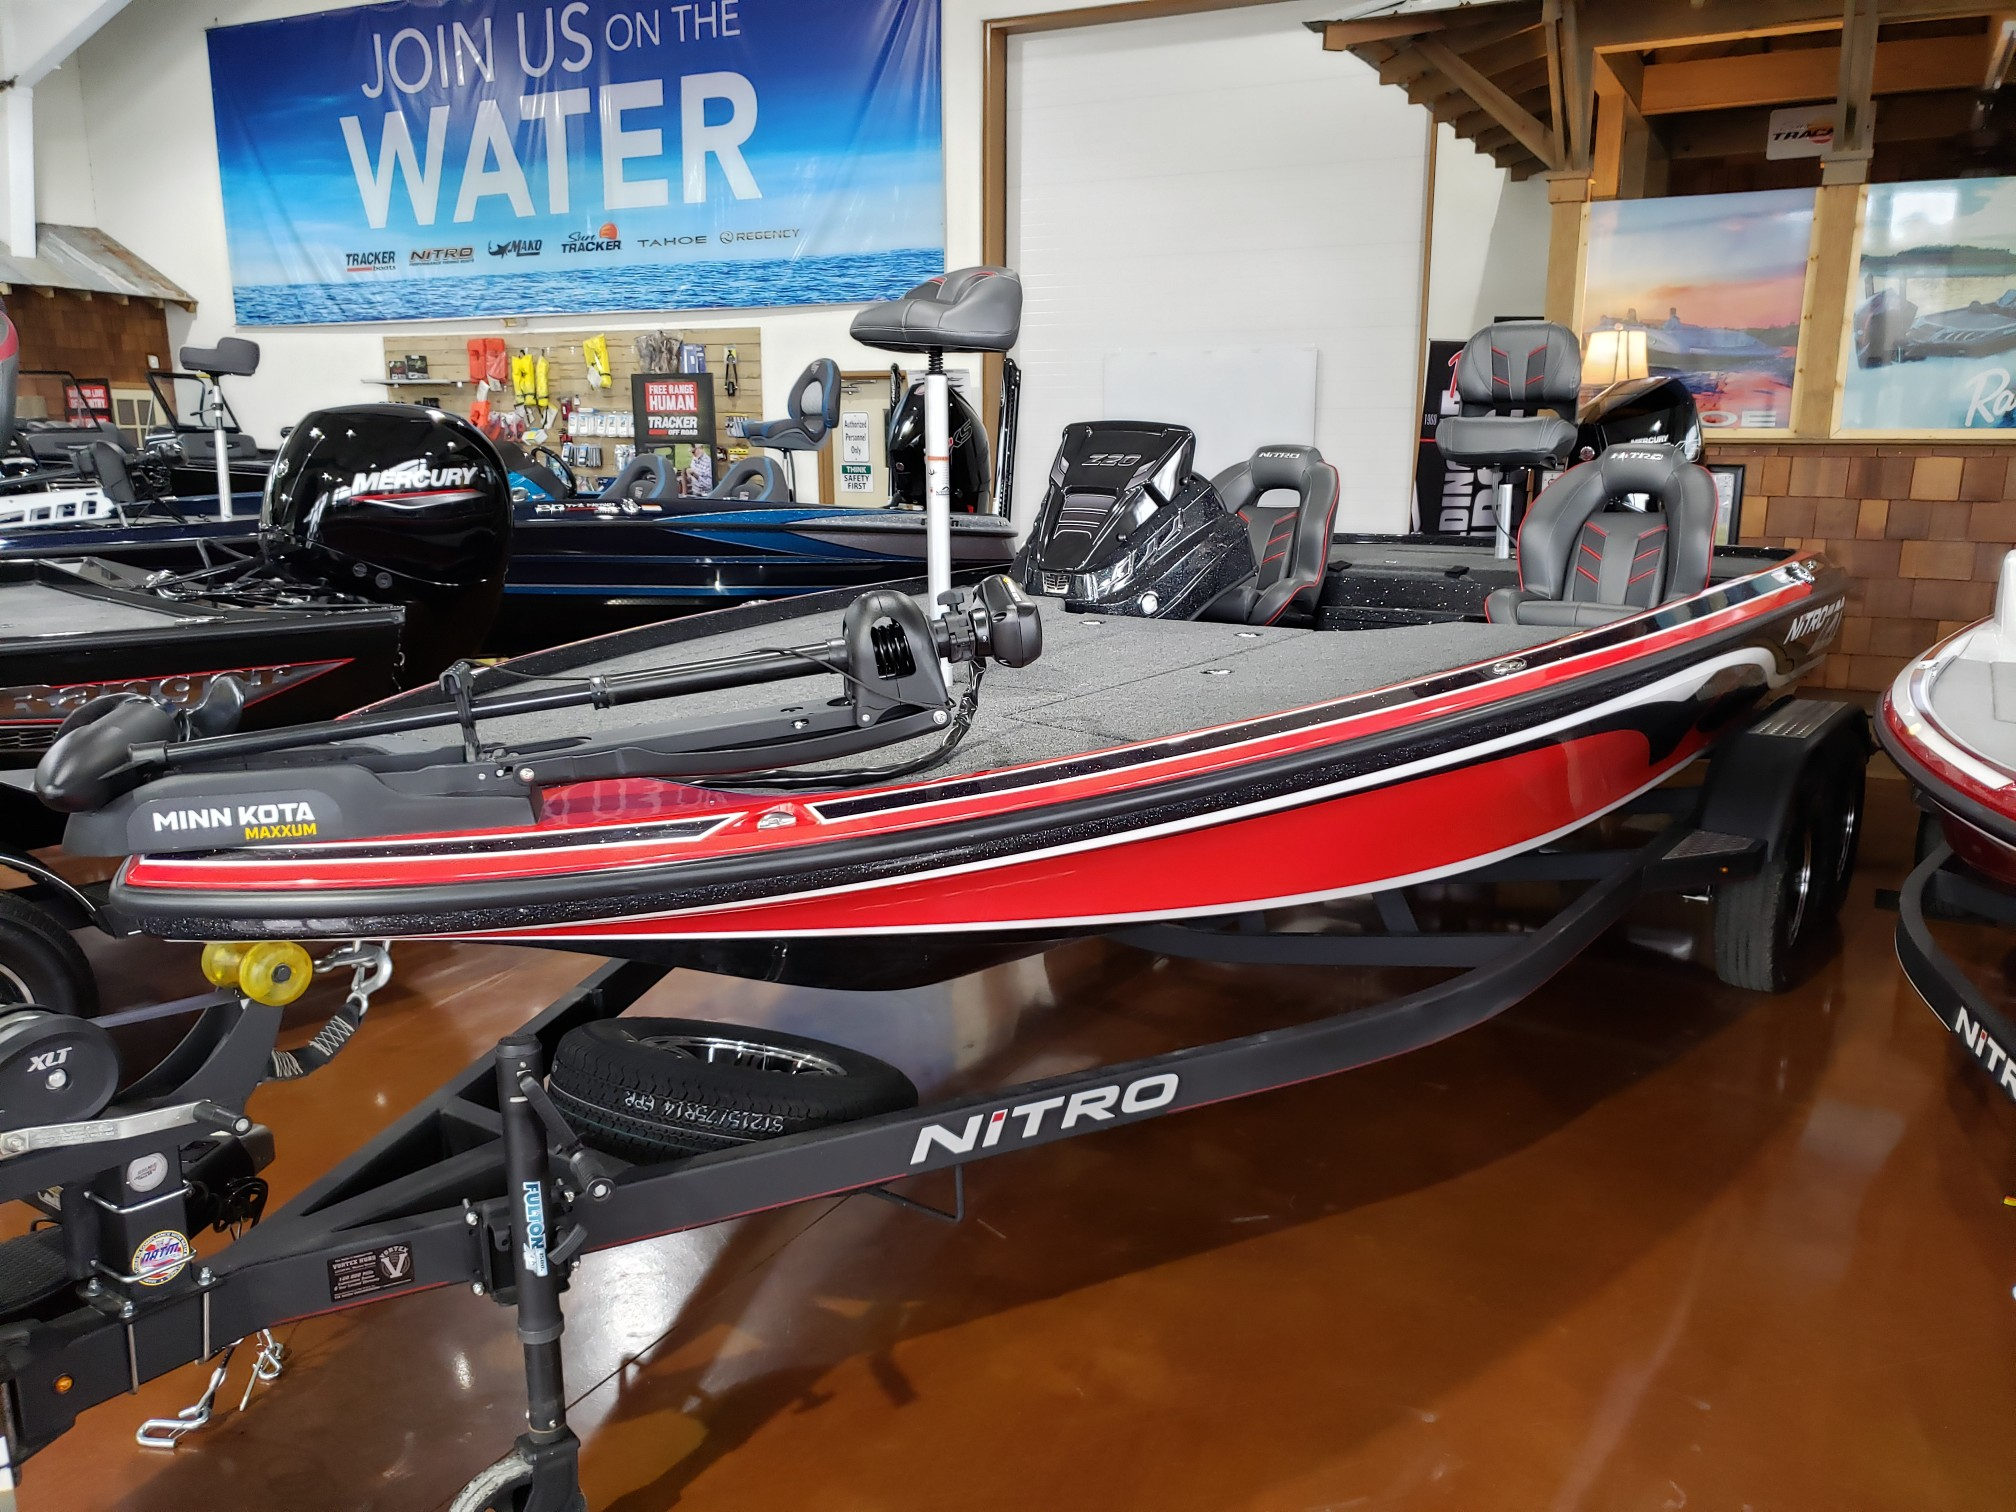 2021 Nitro boat for sale, model of the boat is NZ20 SC21 & Image # 17 of 50